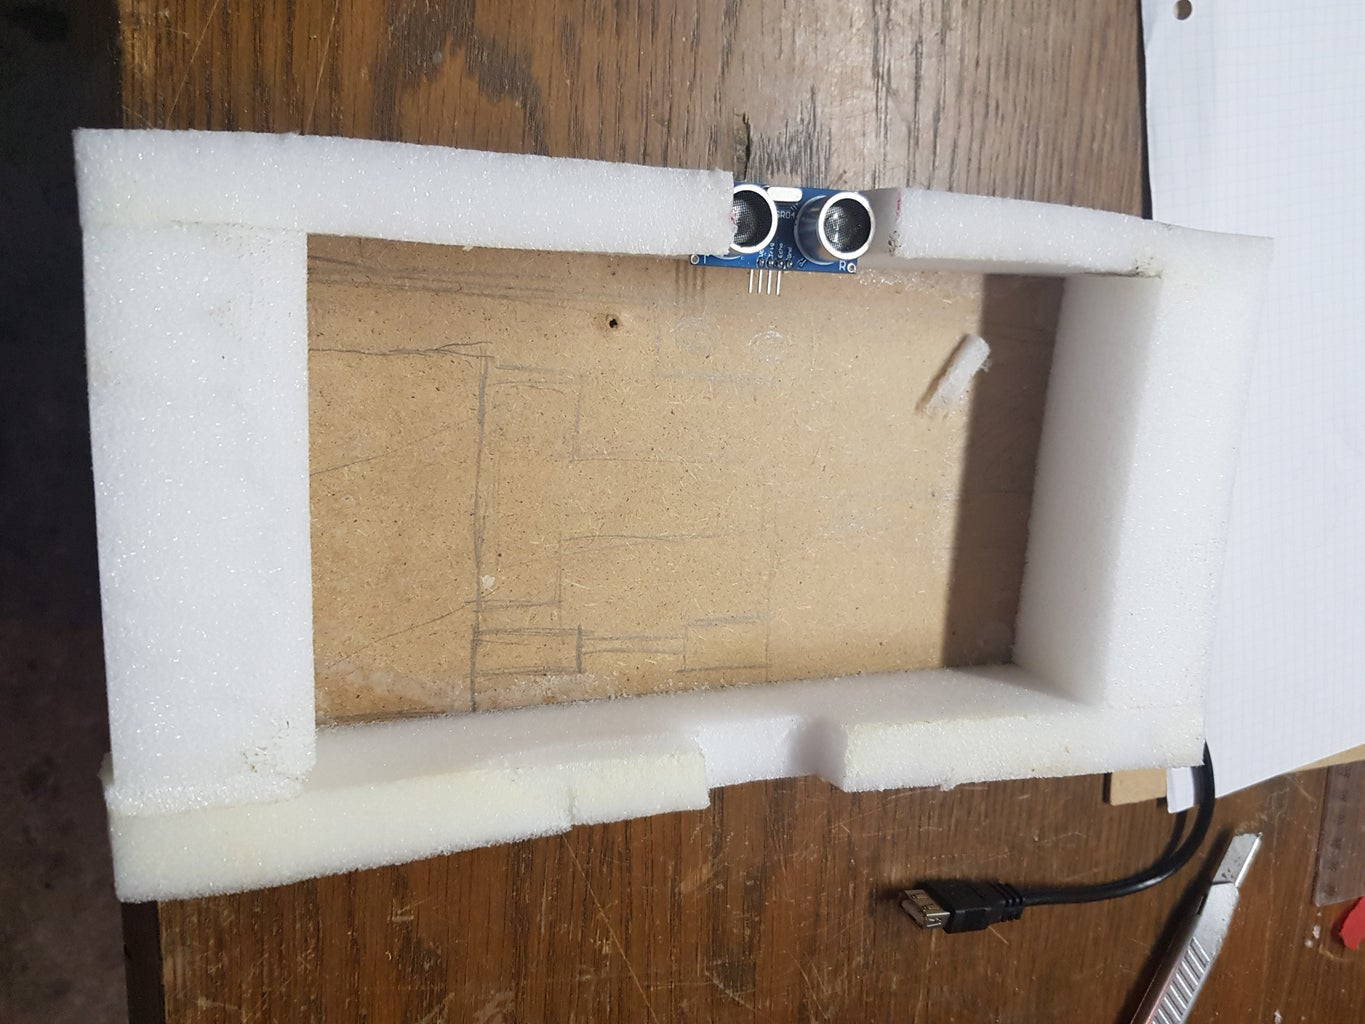 Build a Housing for the Electronics